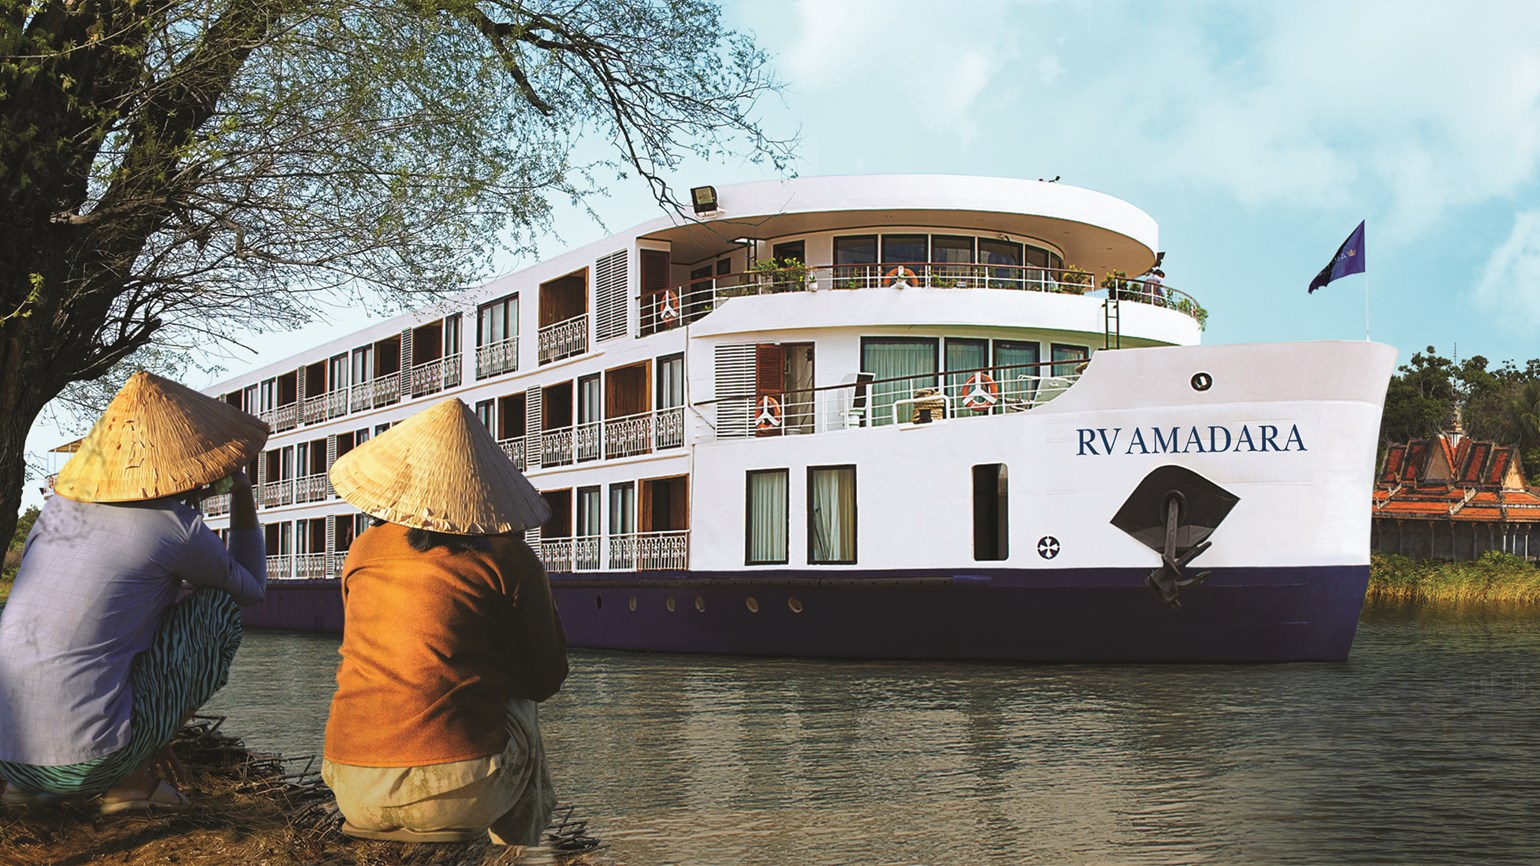 Mekong River cruise, $630